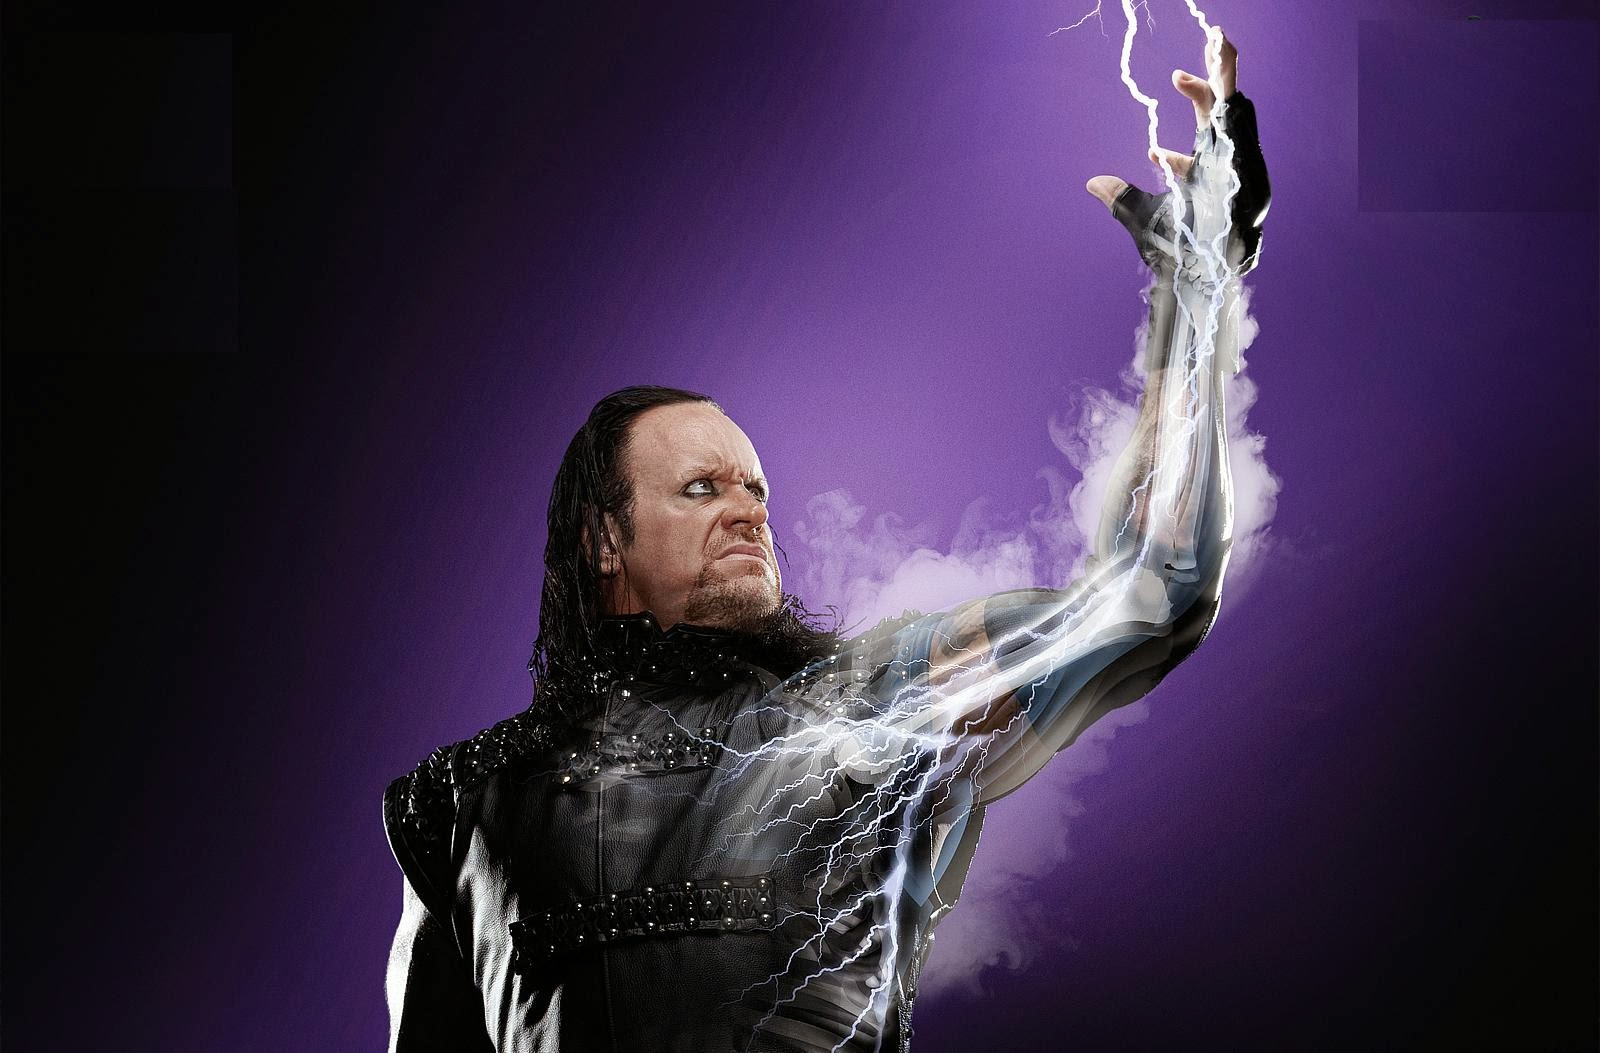 Undertaker Hd Wallpapers Free Download | WWE HD WALLPAPER FREE DOWNLOAD